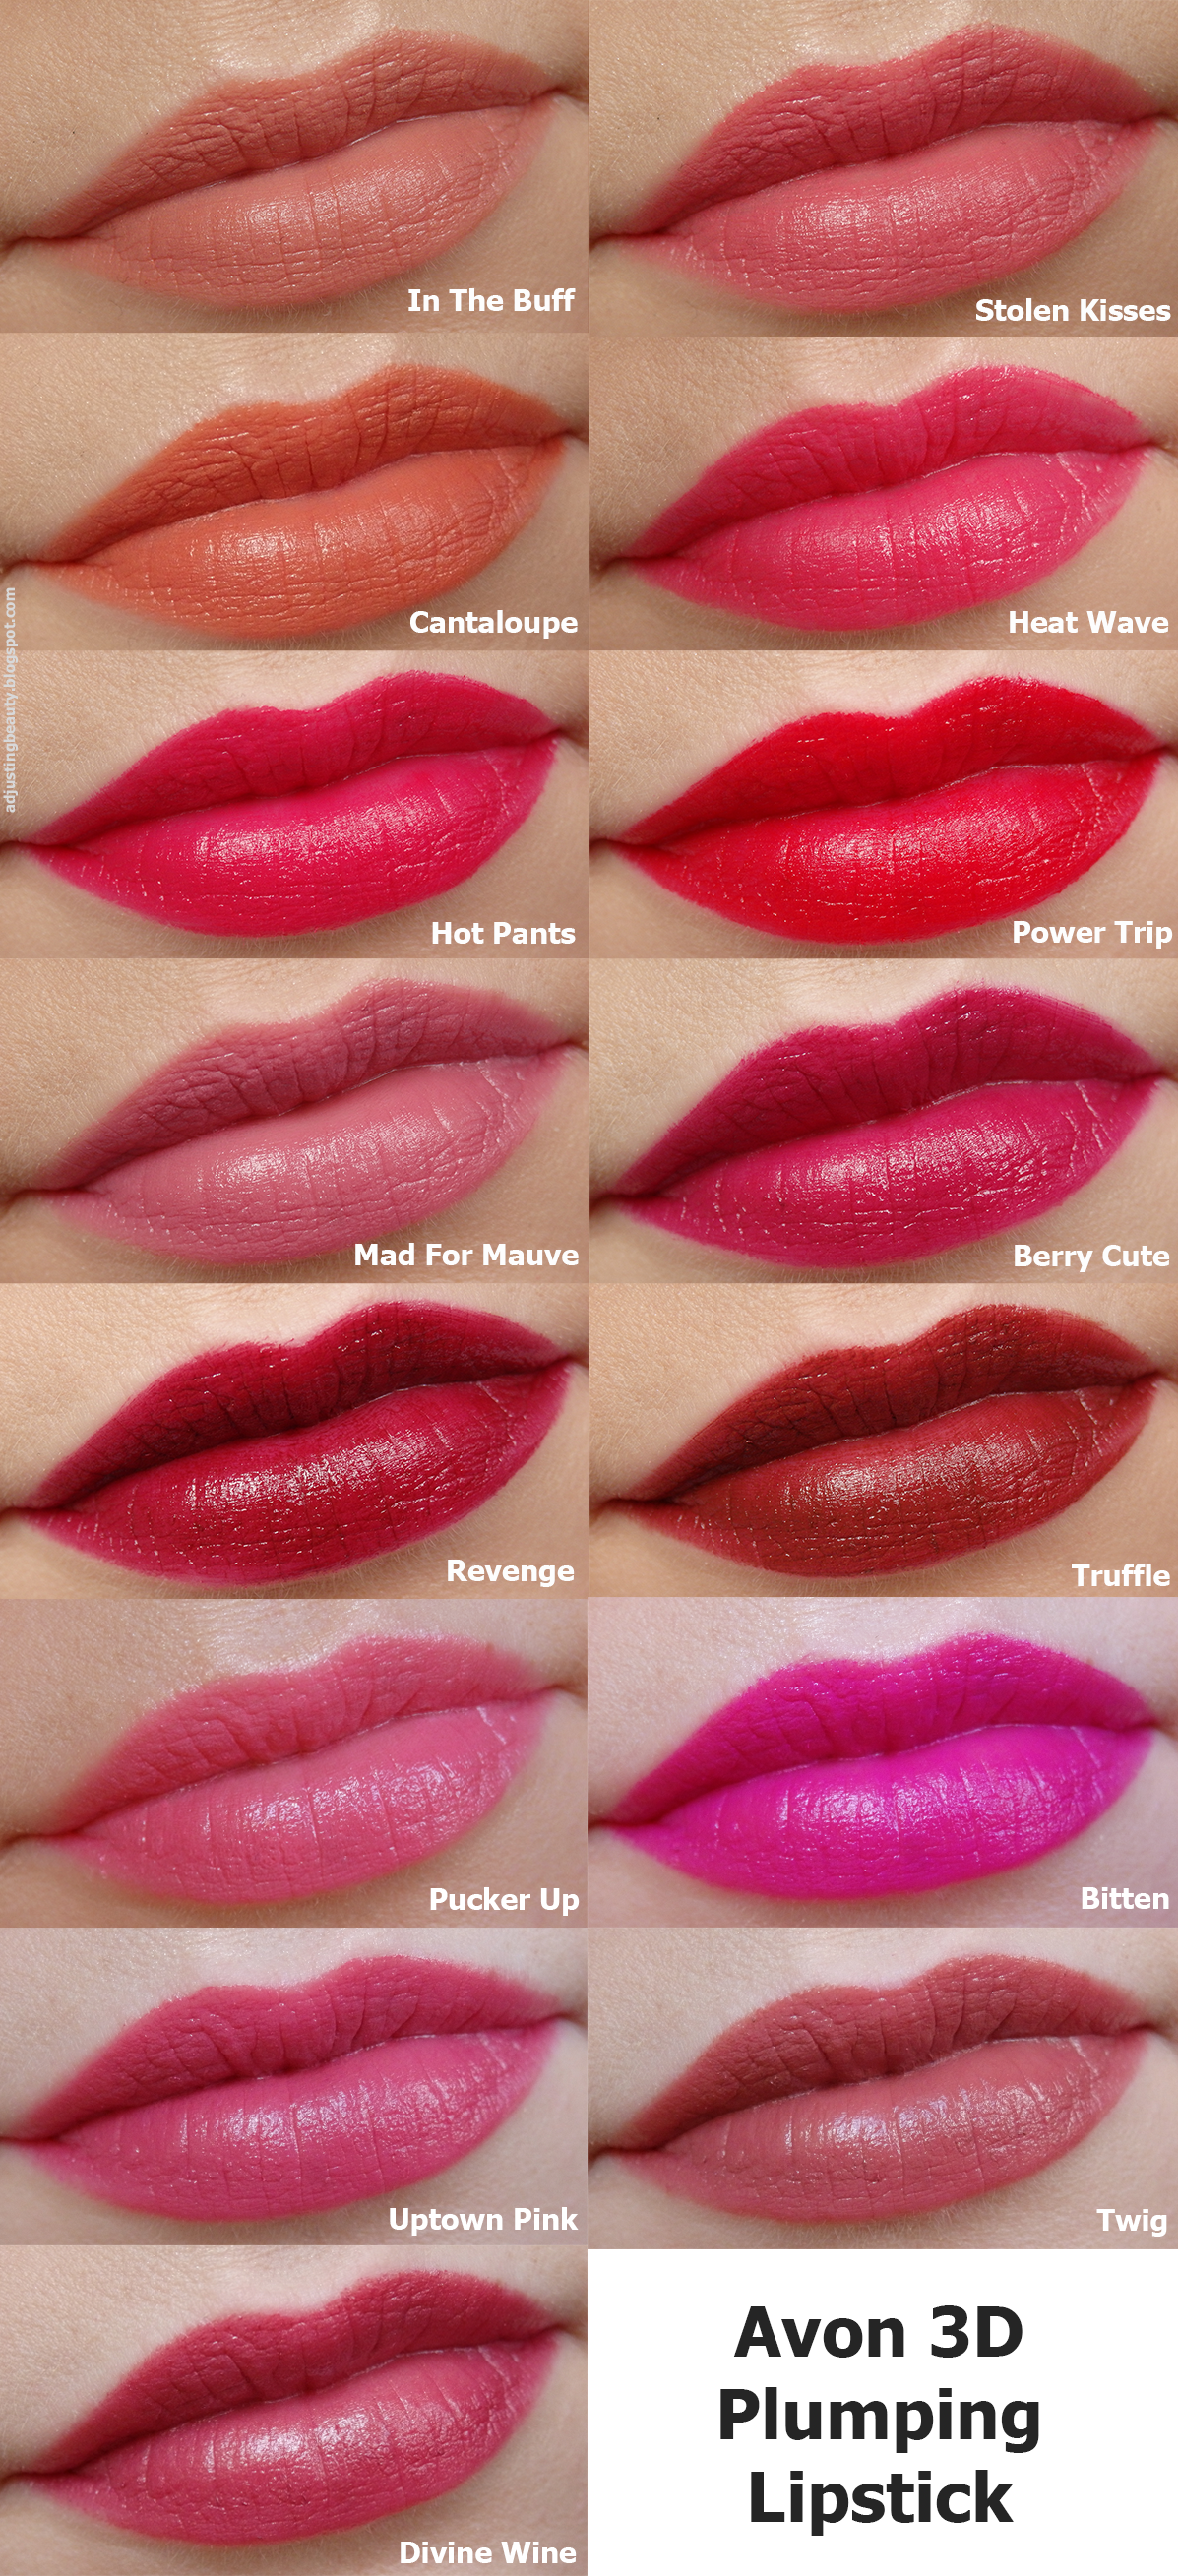 Review Of Avon 3d Plumping Lipsticks Beyond Color Lipsticks All 15